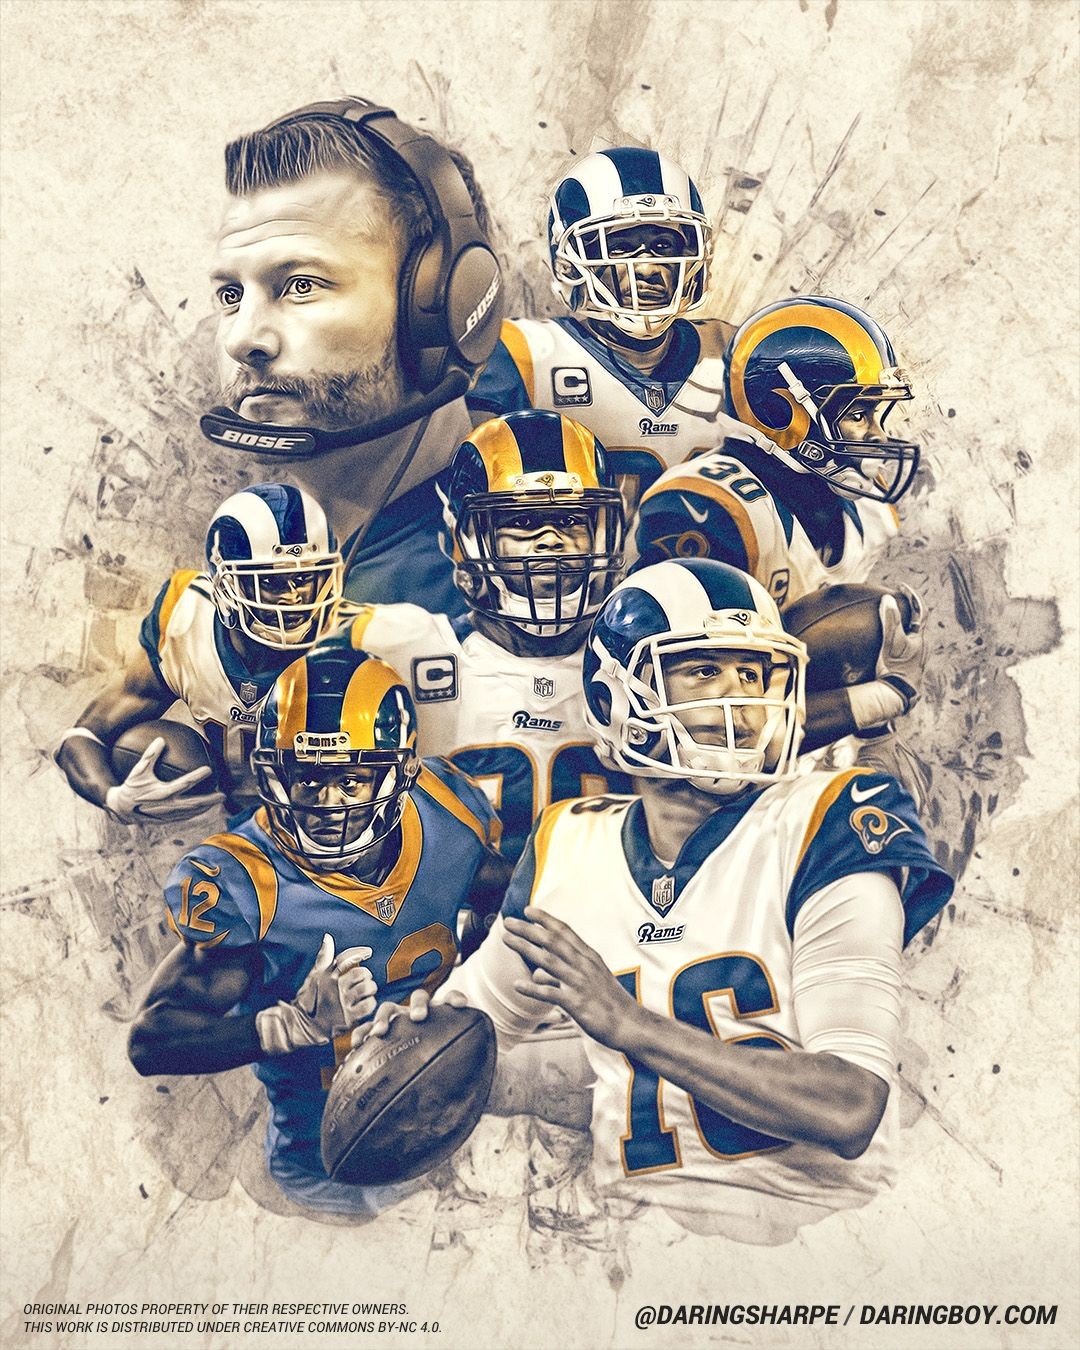 2019 Los Angeles Rams Los Angeles Rams Rams Football La Rams